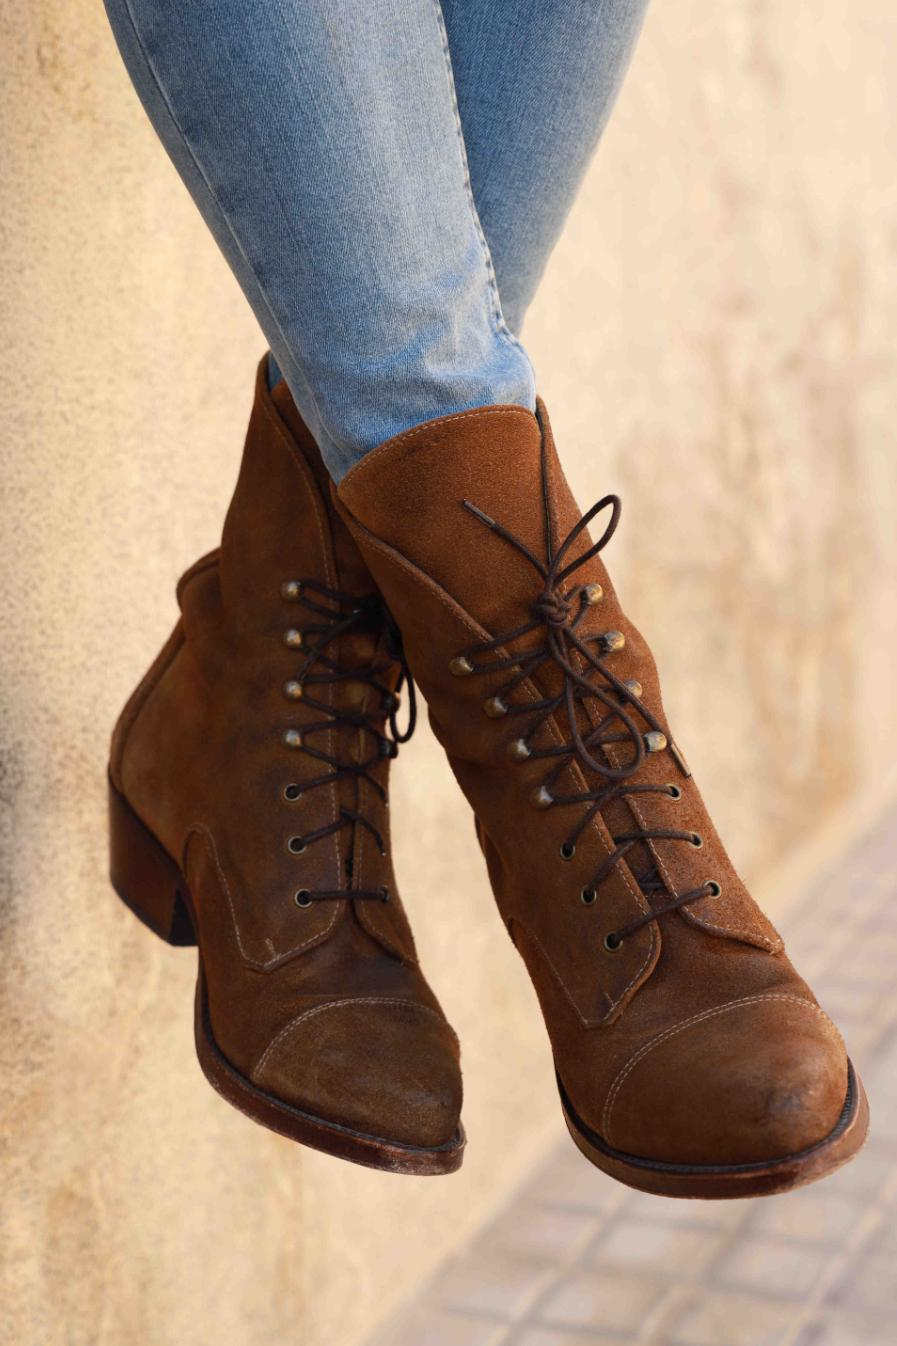 Types of casual boots